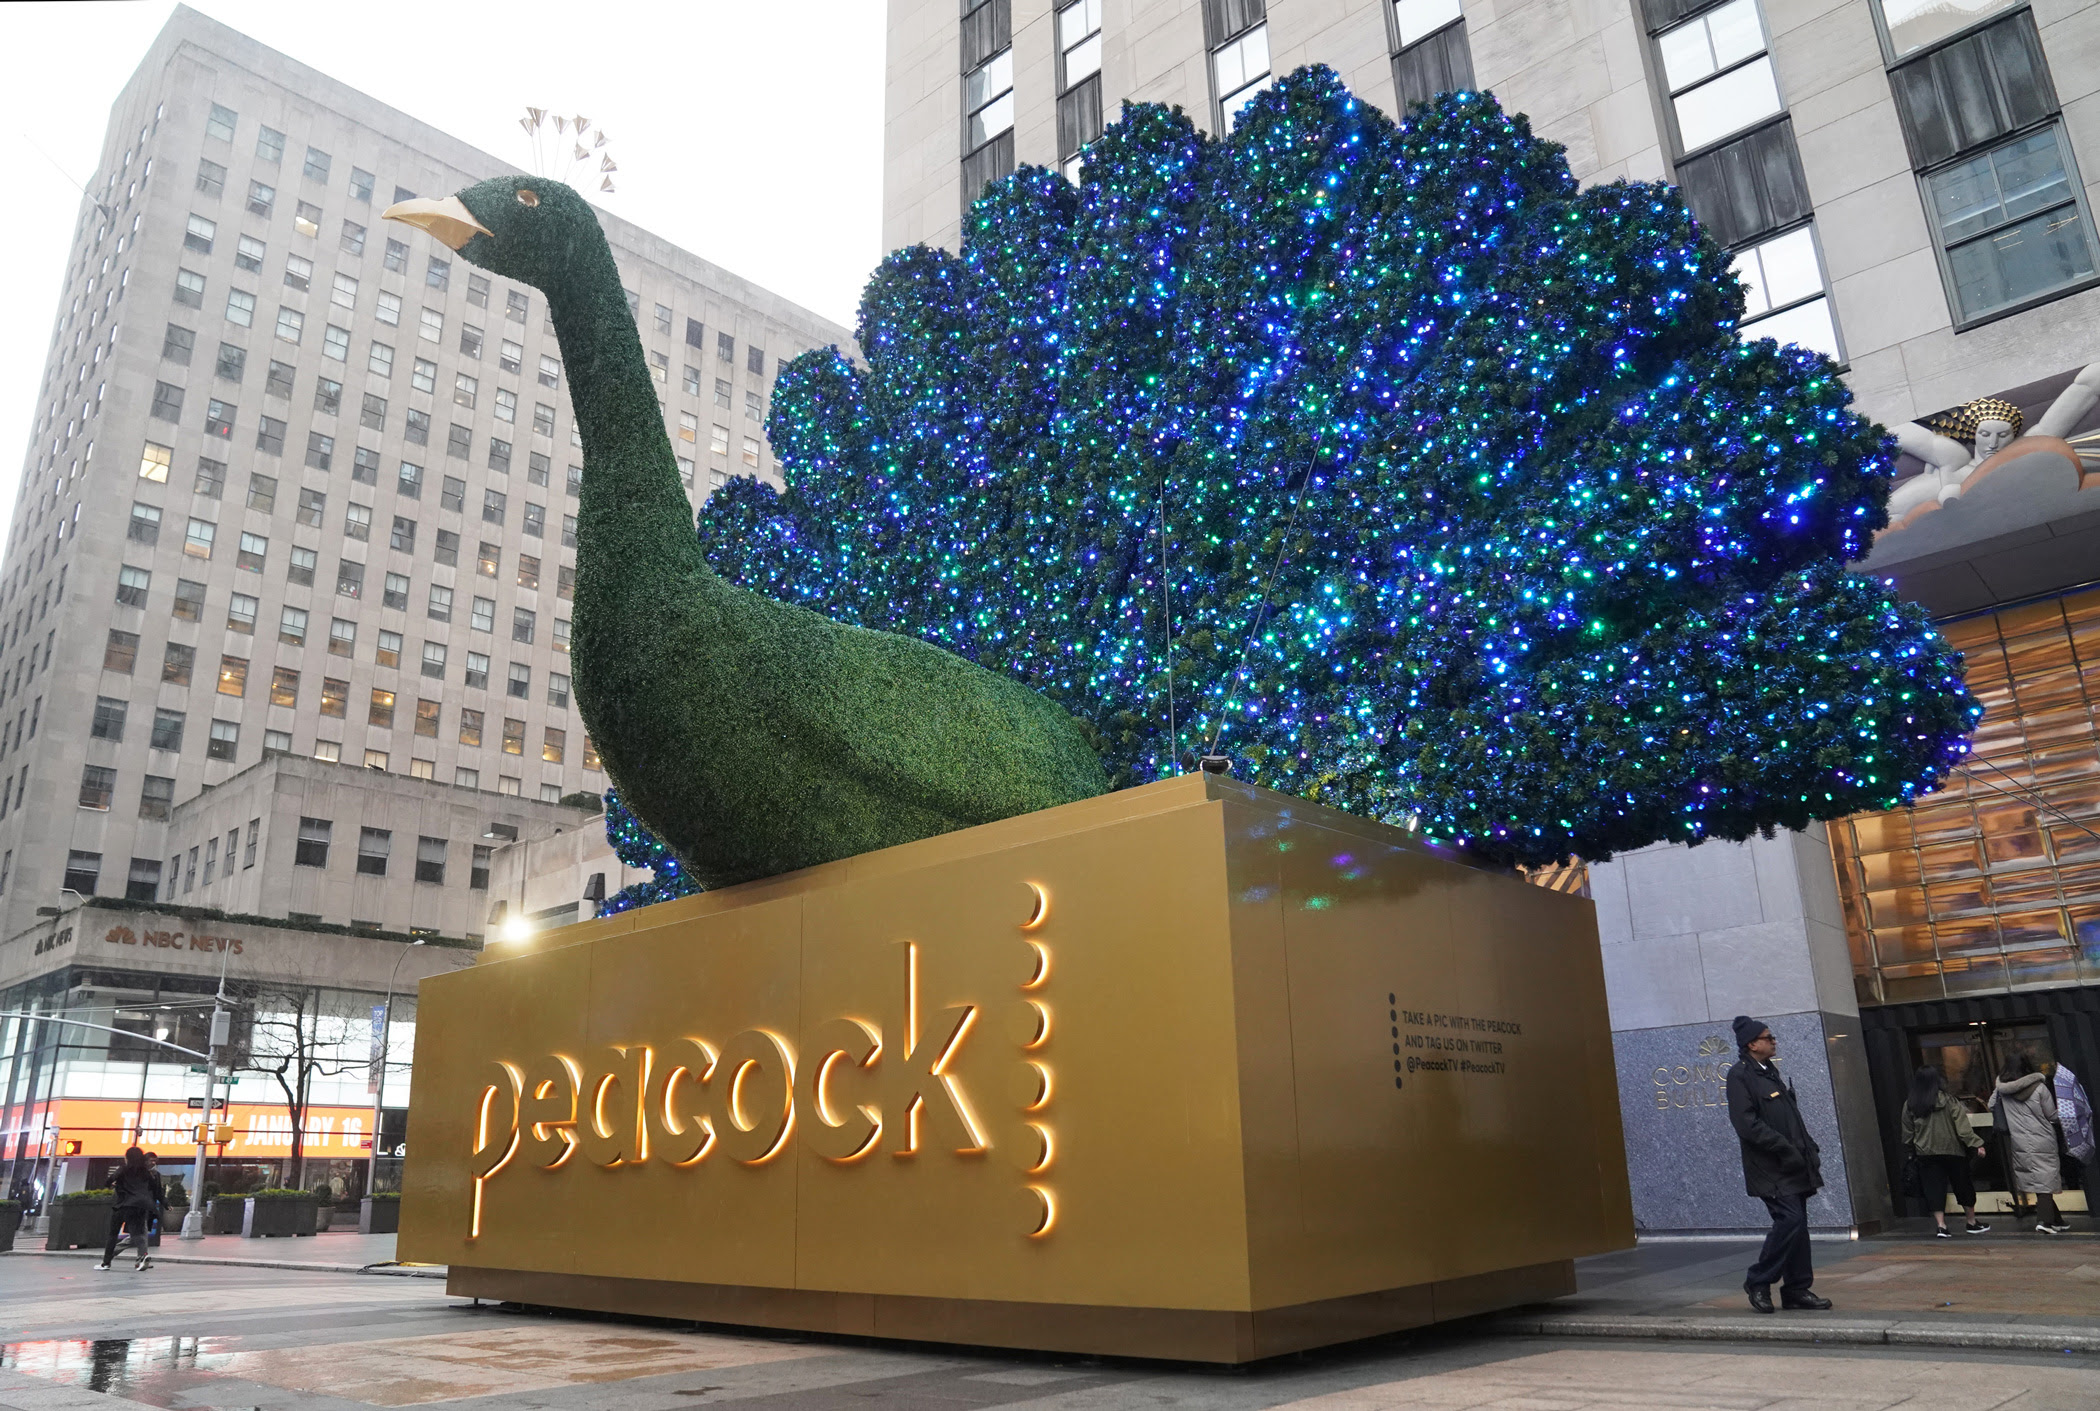 NBC peacock logo in New York.